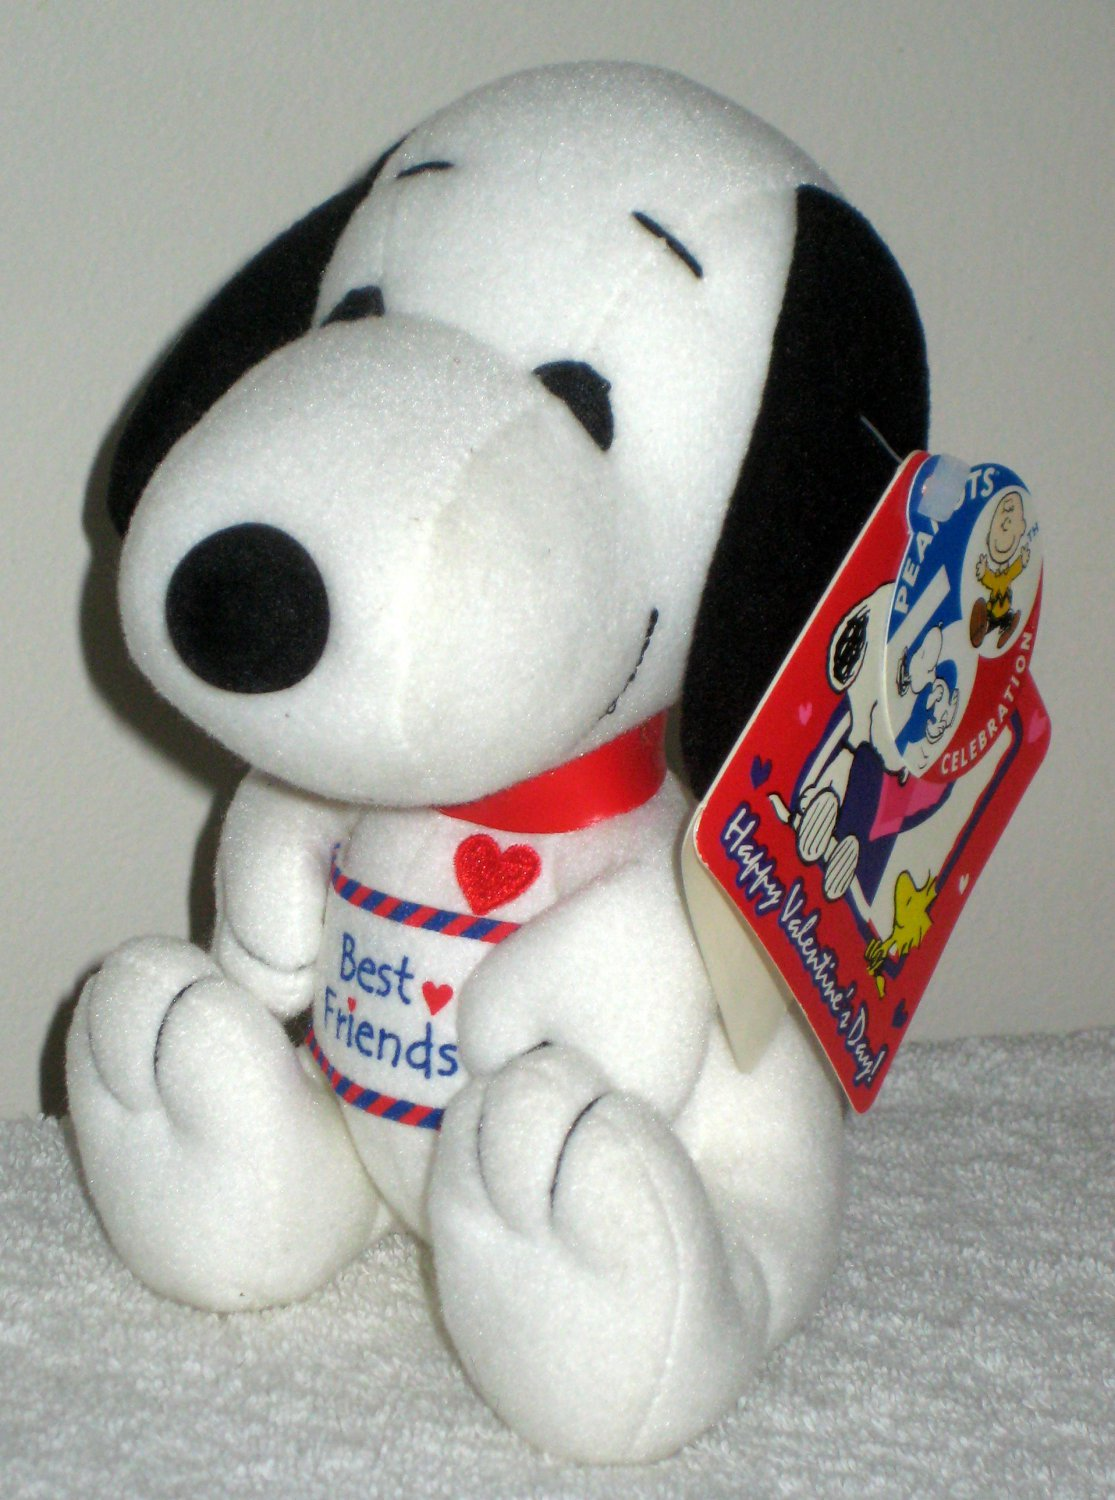 Sold Baby Snoopy Plush Doll Squeak Toy Best Friends 50th